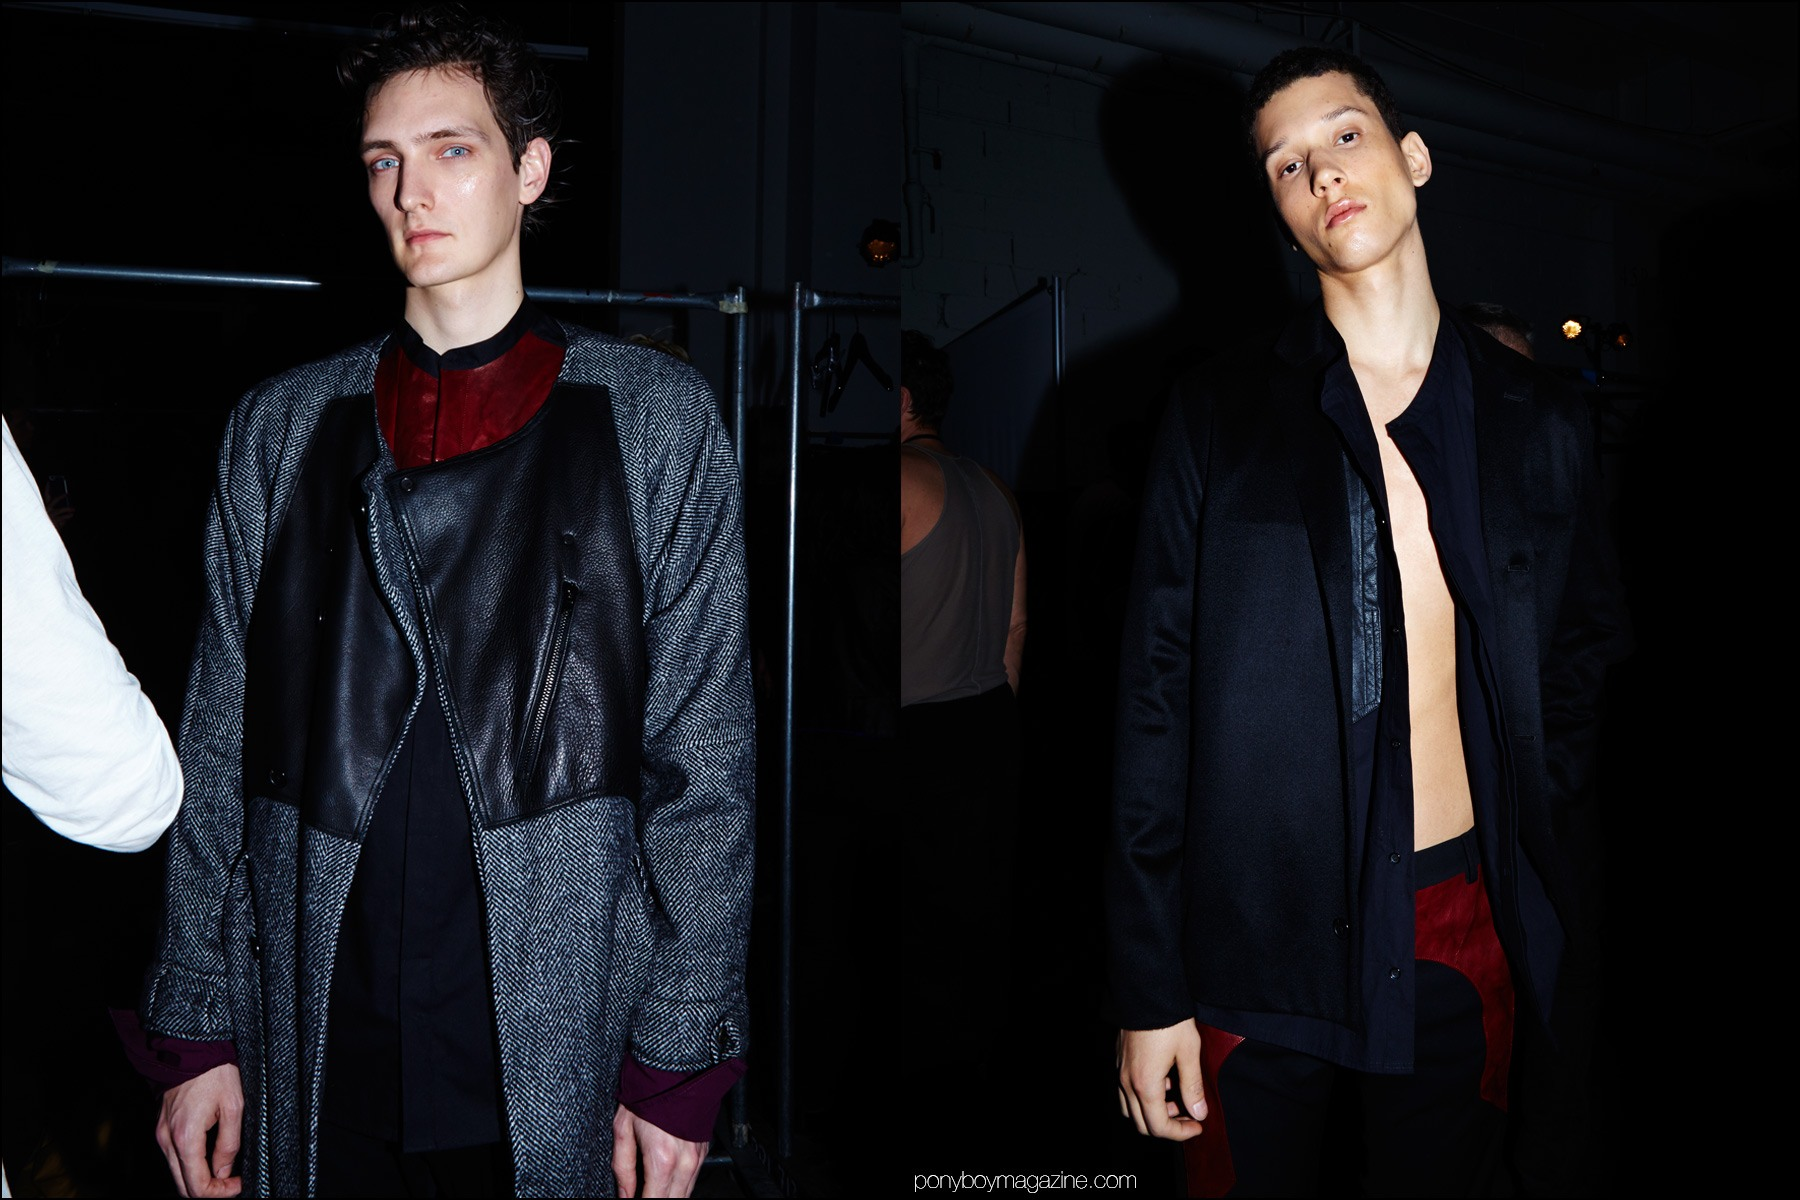 Male models Yannick Abrath and Abiah Hostvedt photographed backstage at Siki Im + Den Im F/W16 menswear show. Photography by Alexander Thompson for Ponyboy magazine NY.